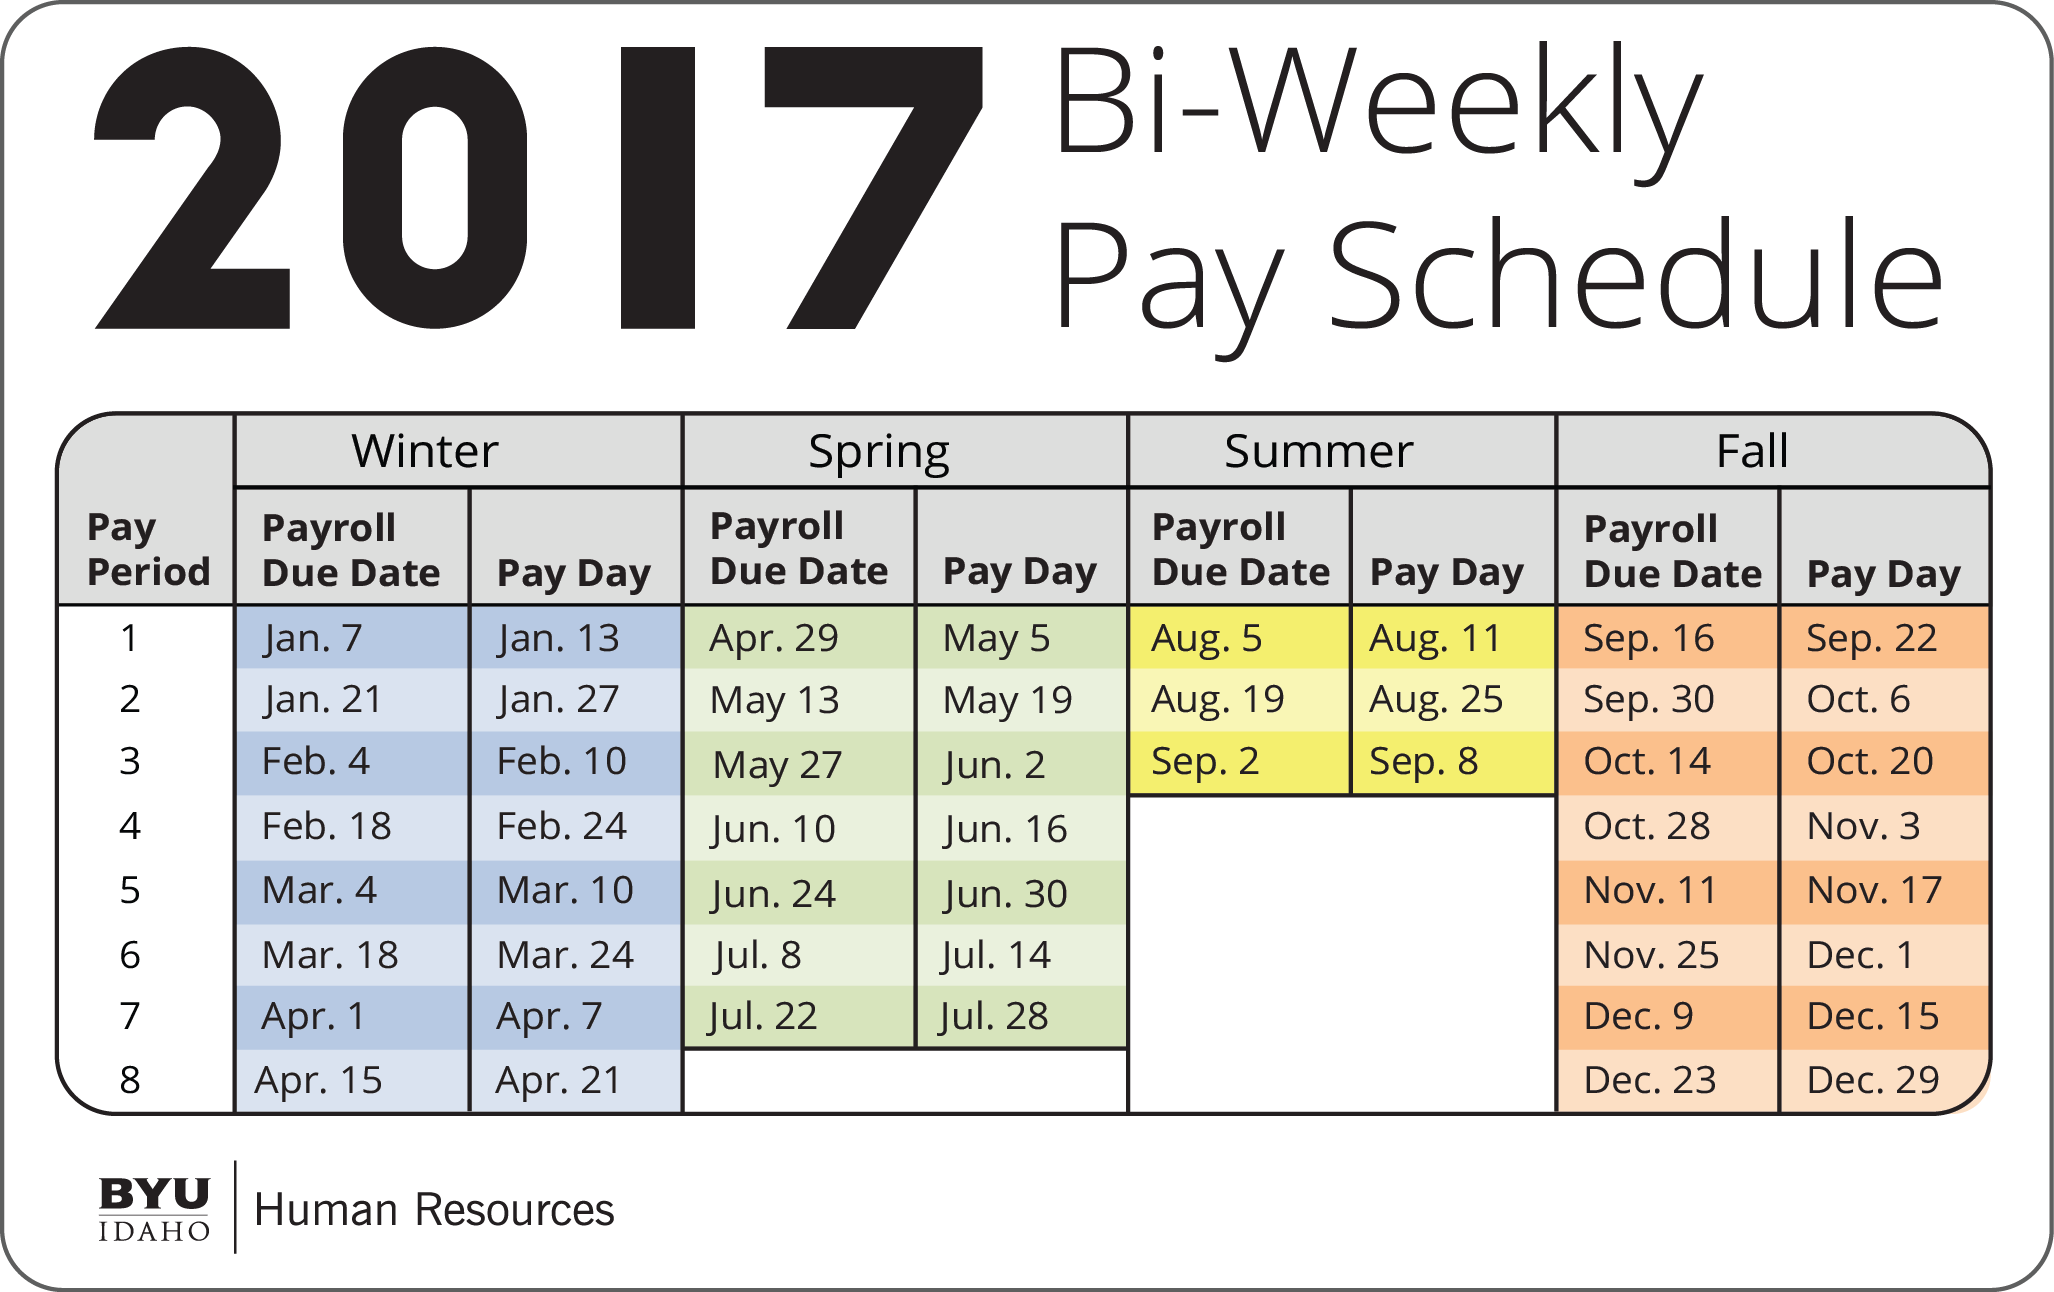 Image Result For Pay Period Every Two Weeks Calendar | Dips throughout Payroll Calendar Every Two Weeks